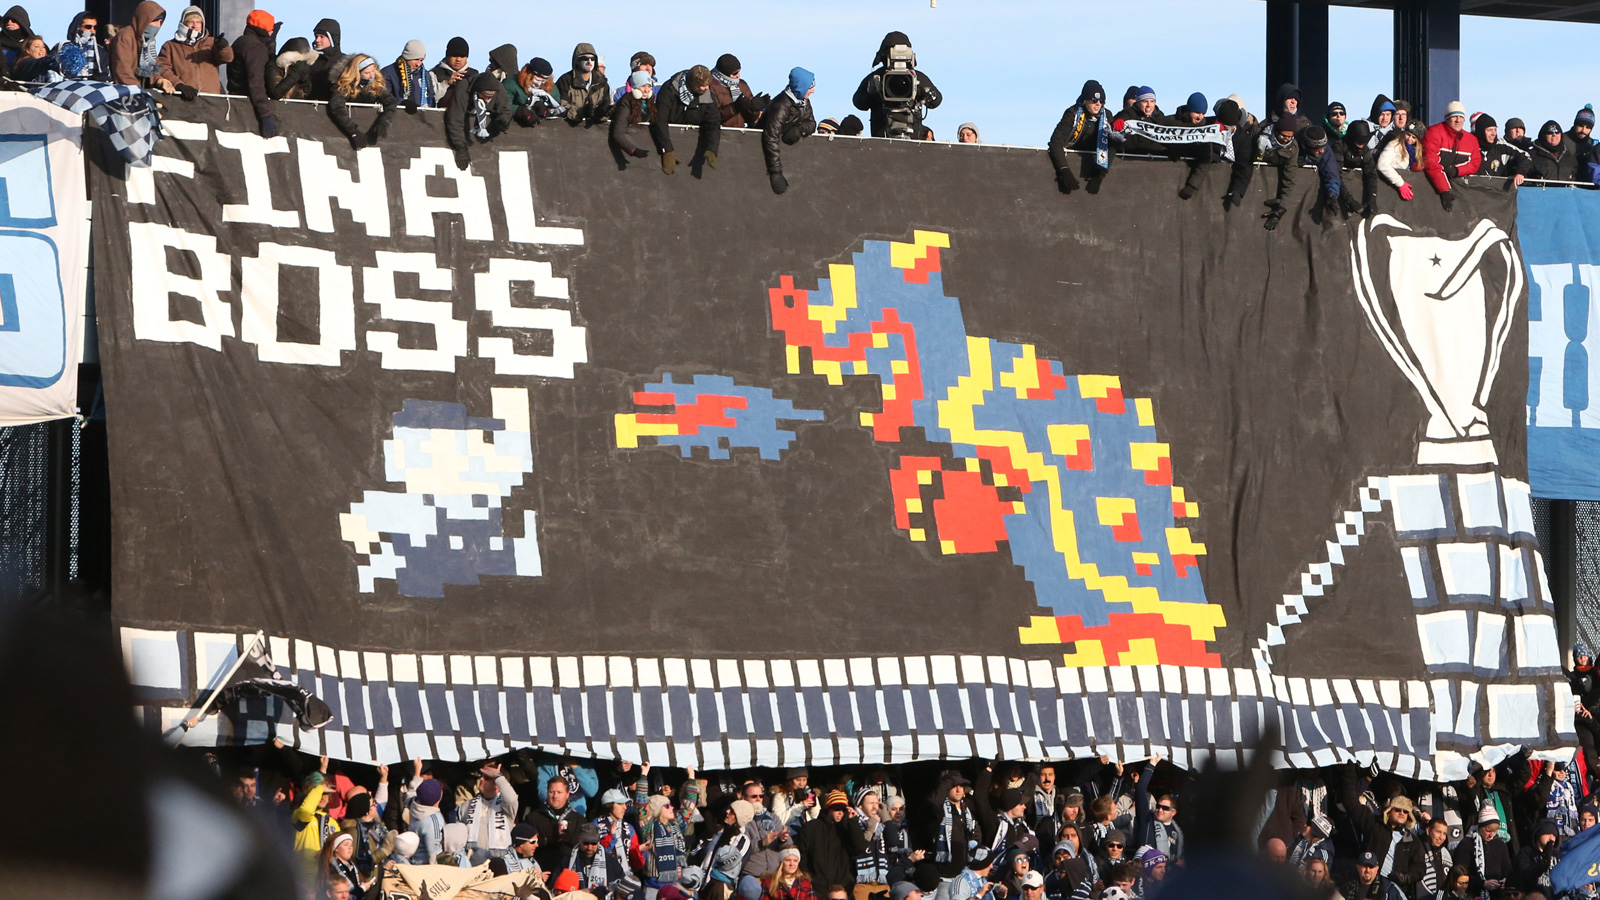 Sporting Kansas City fans channel their inner Mario ahead of the 2013 MLS Cup final vs. Real Salt Lake.